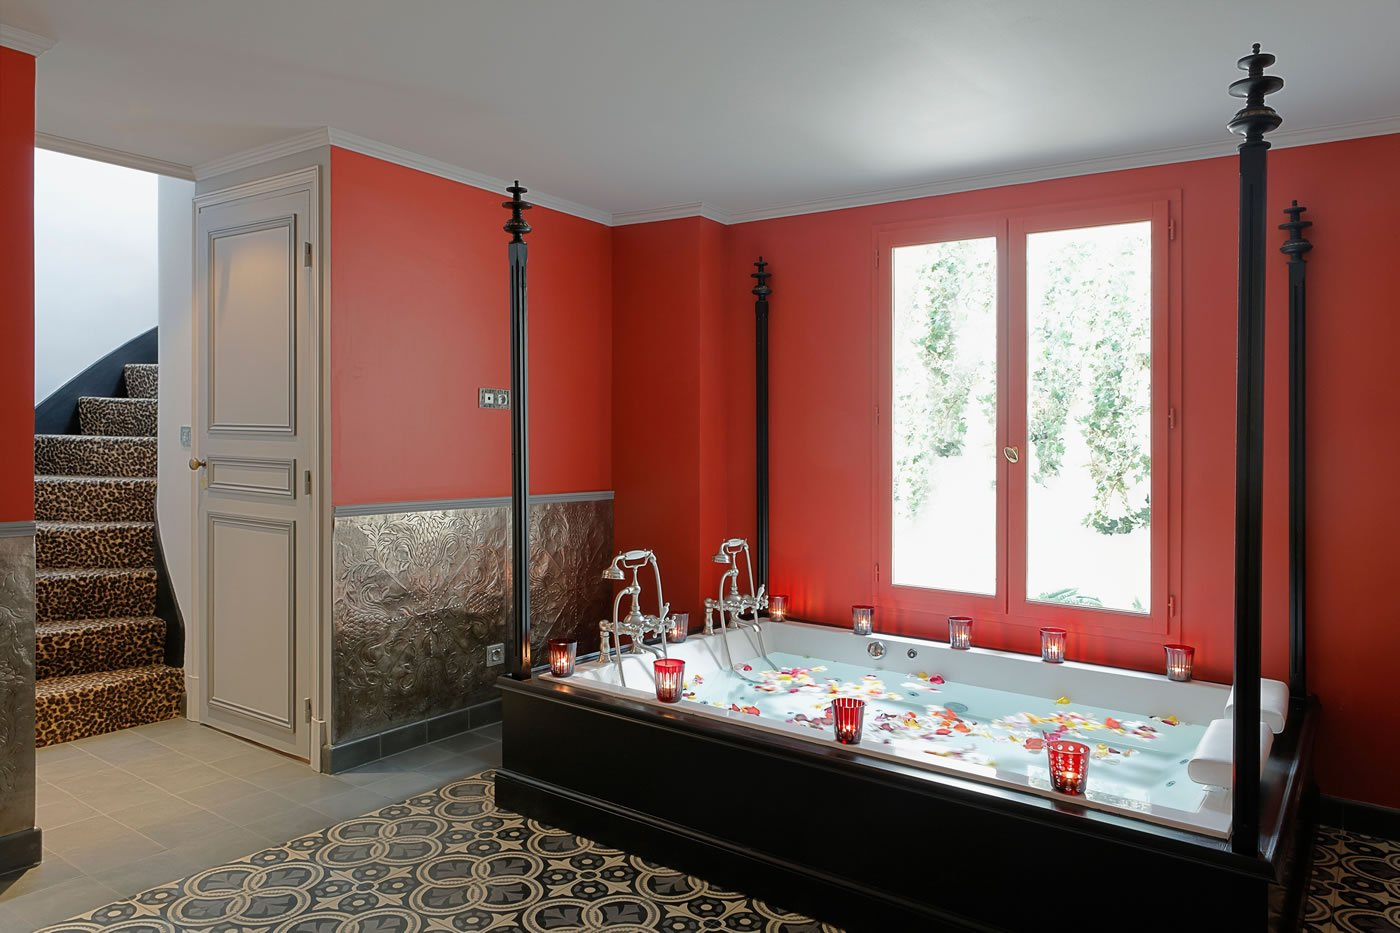 St james paris review for Hotel paris jacuzzi